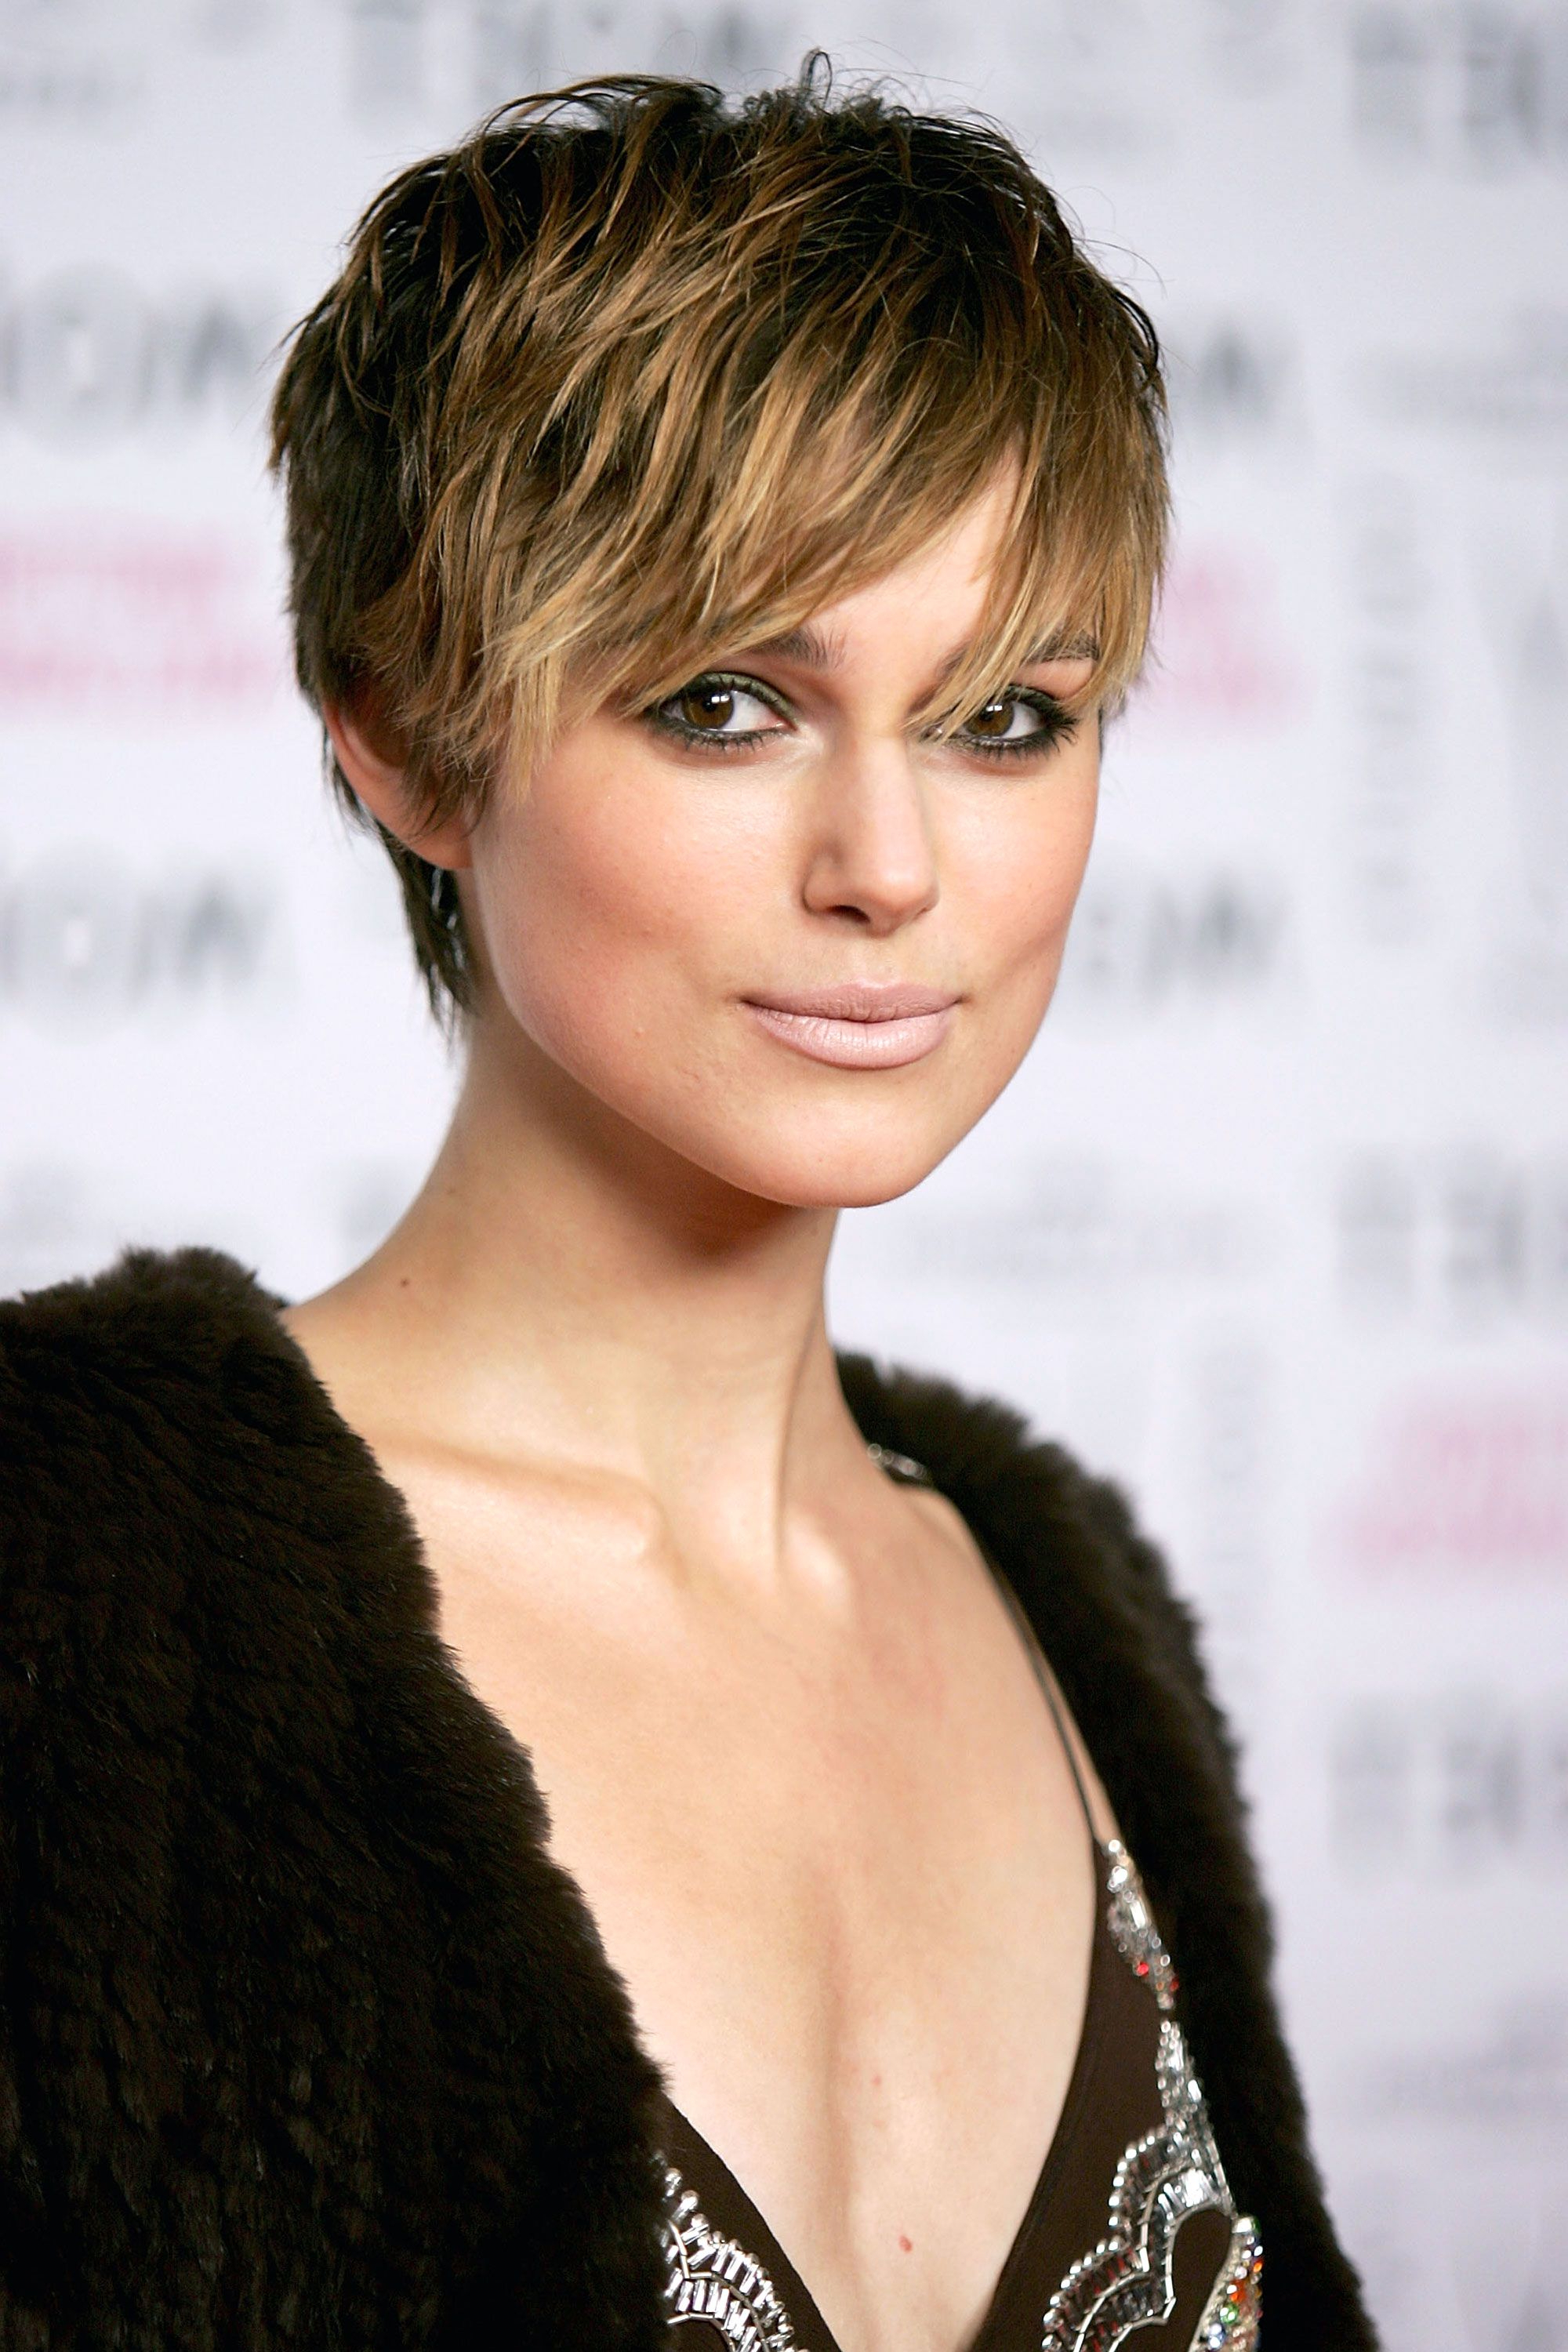 50+ Pixie Cuts We Love For 2018 – Short Pixie Hairstyles From With Regard To Ladies Short Hairstyles With Fringe (View 10 of 25)